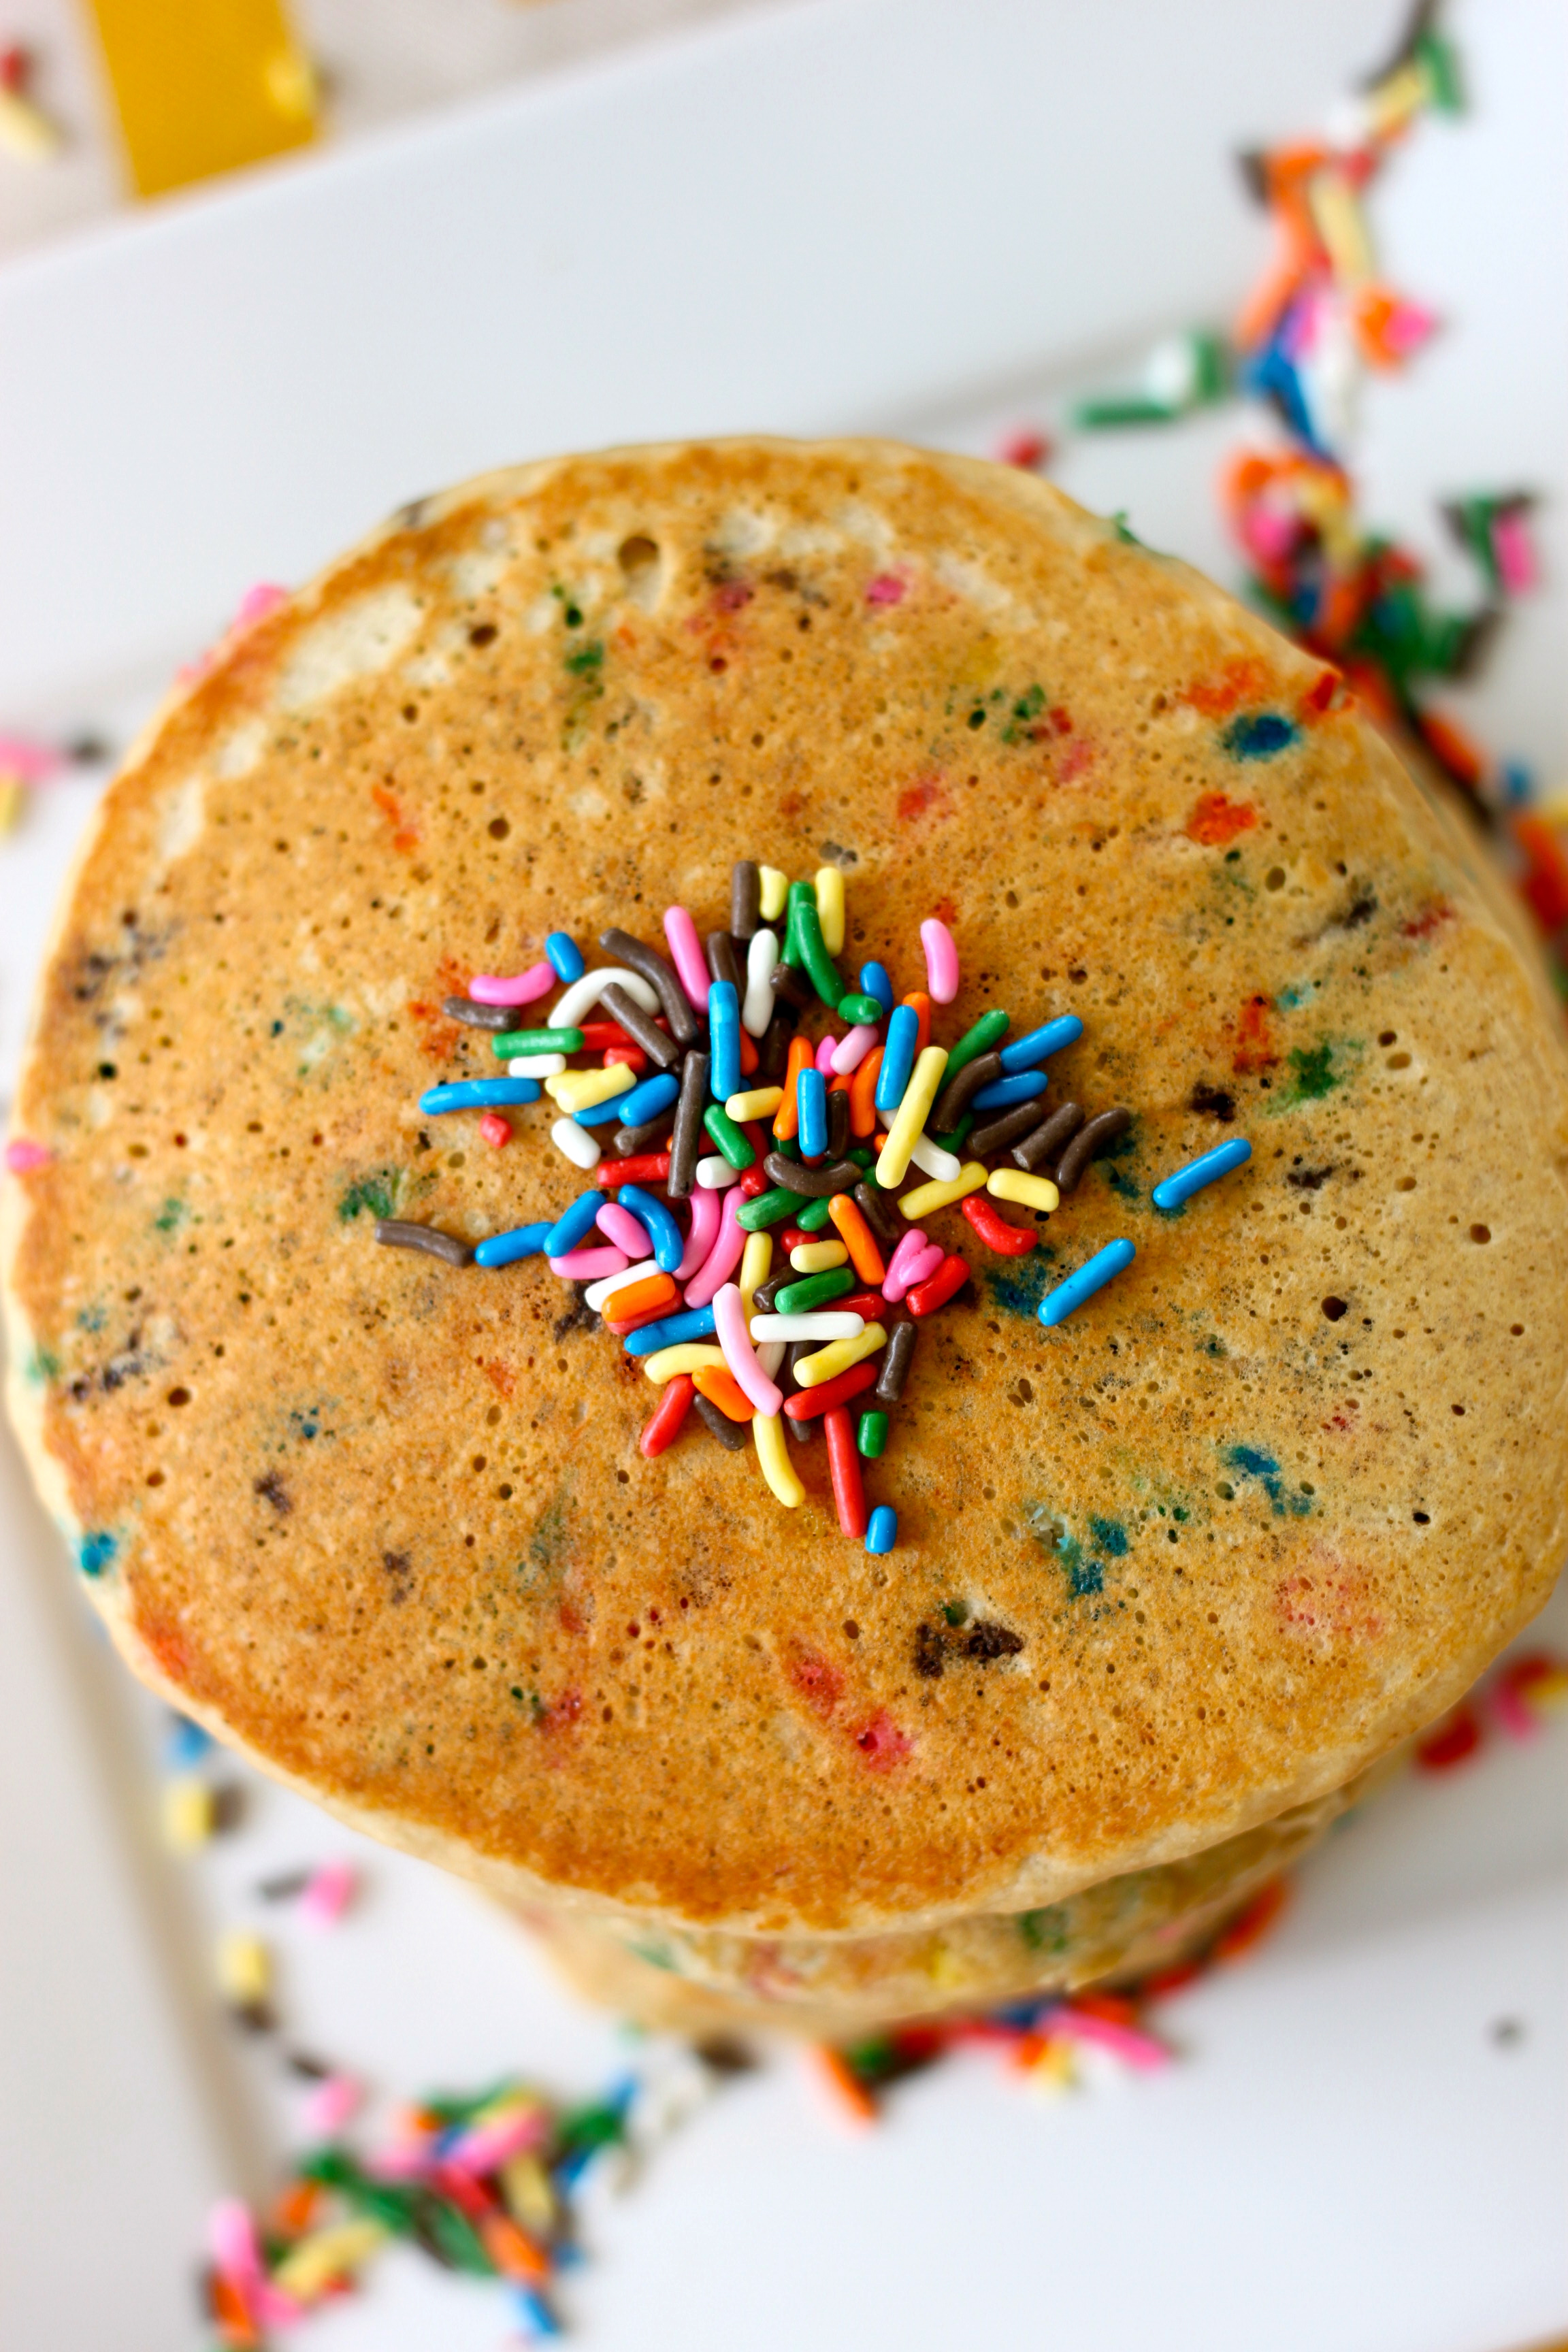 All Natural-Healthy Birthday Cake Pancakes from The Diva Dish